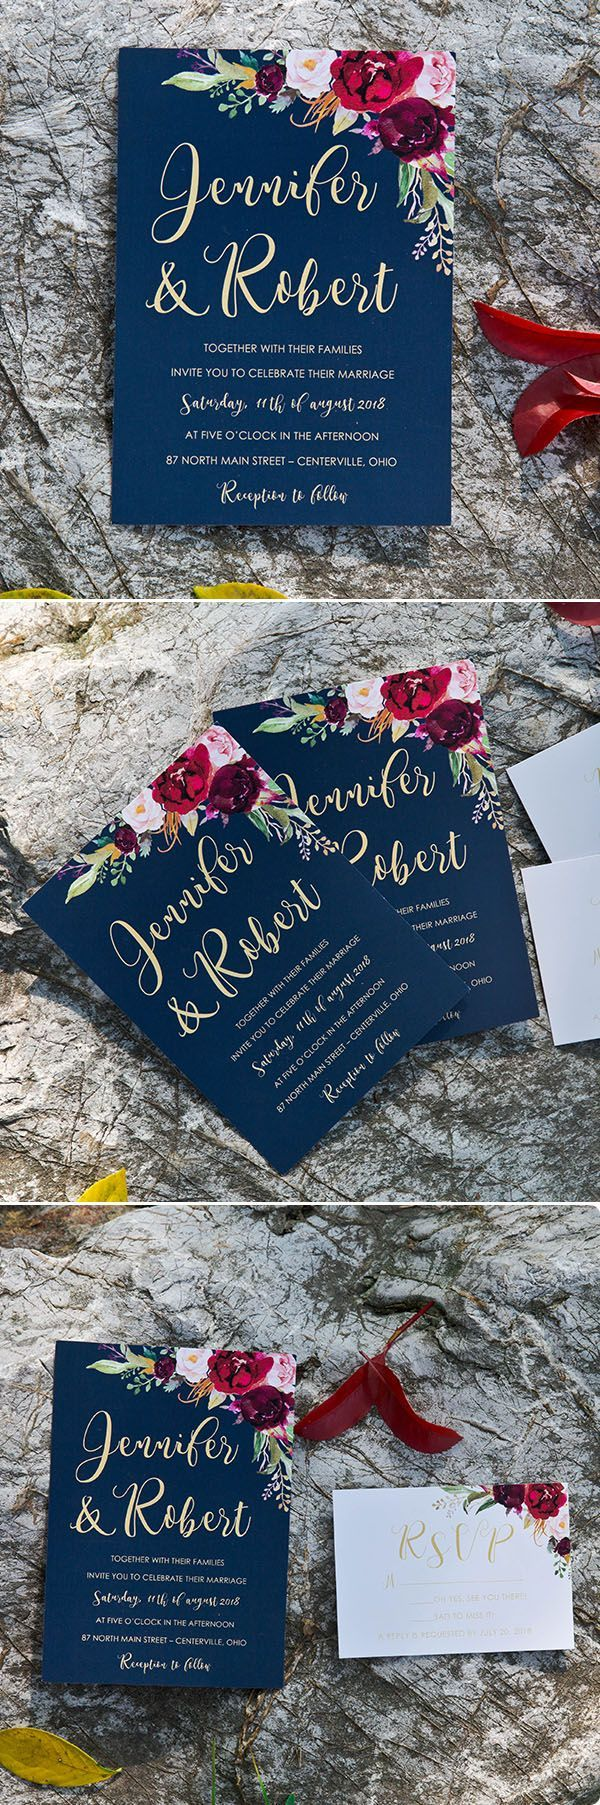 boho navy blue and burgundy floral watercolor